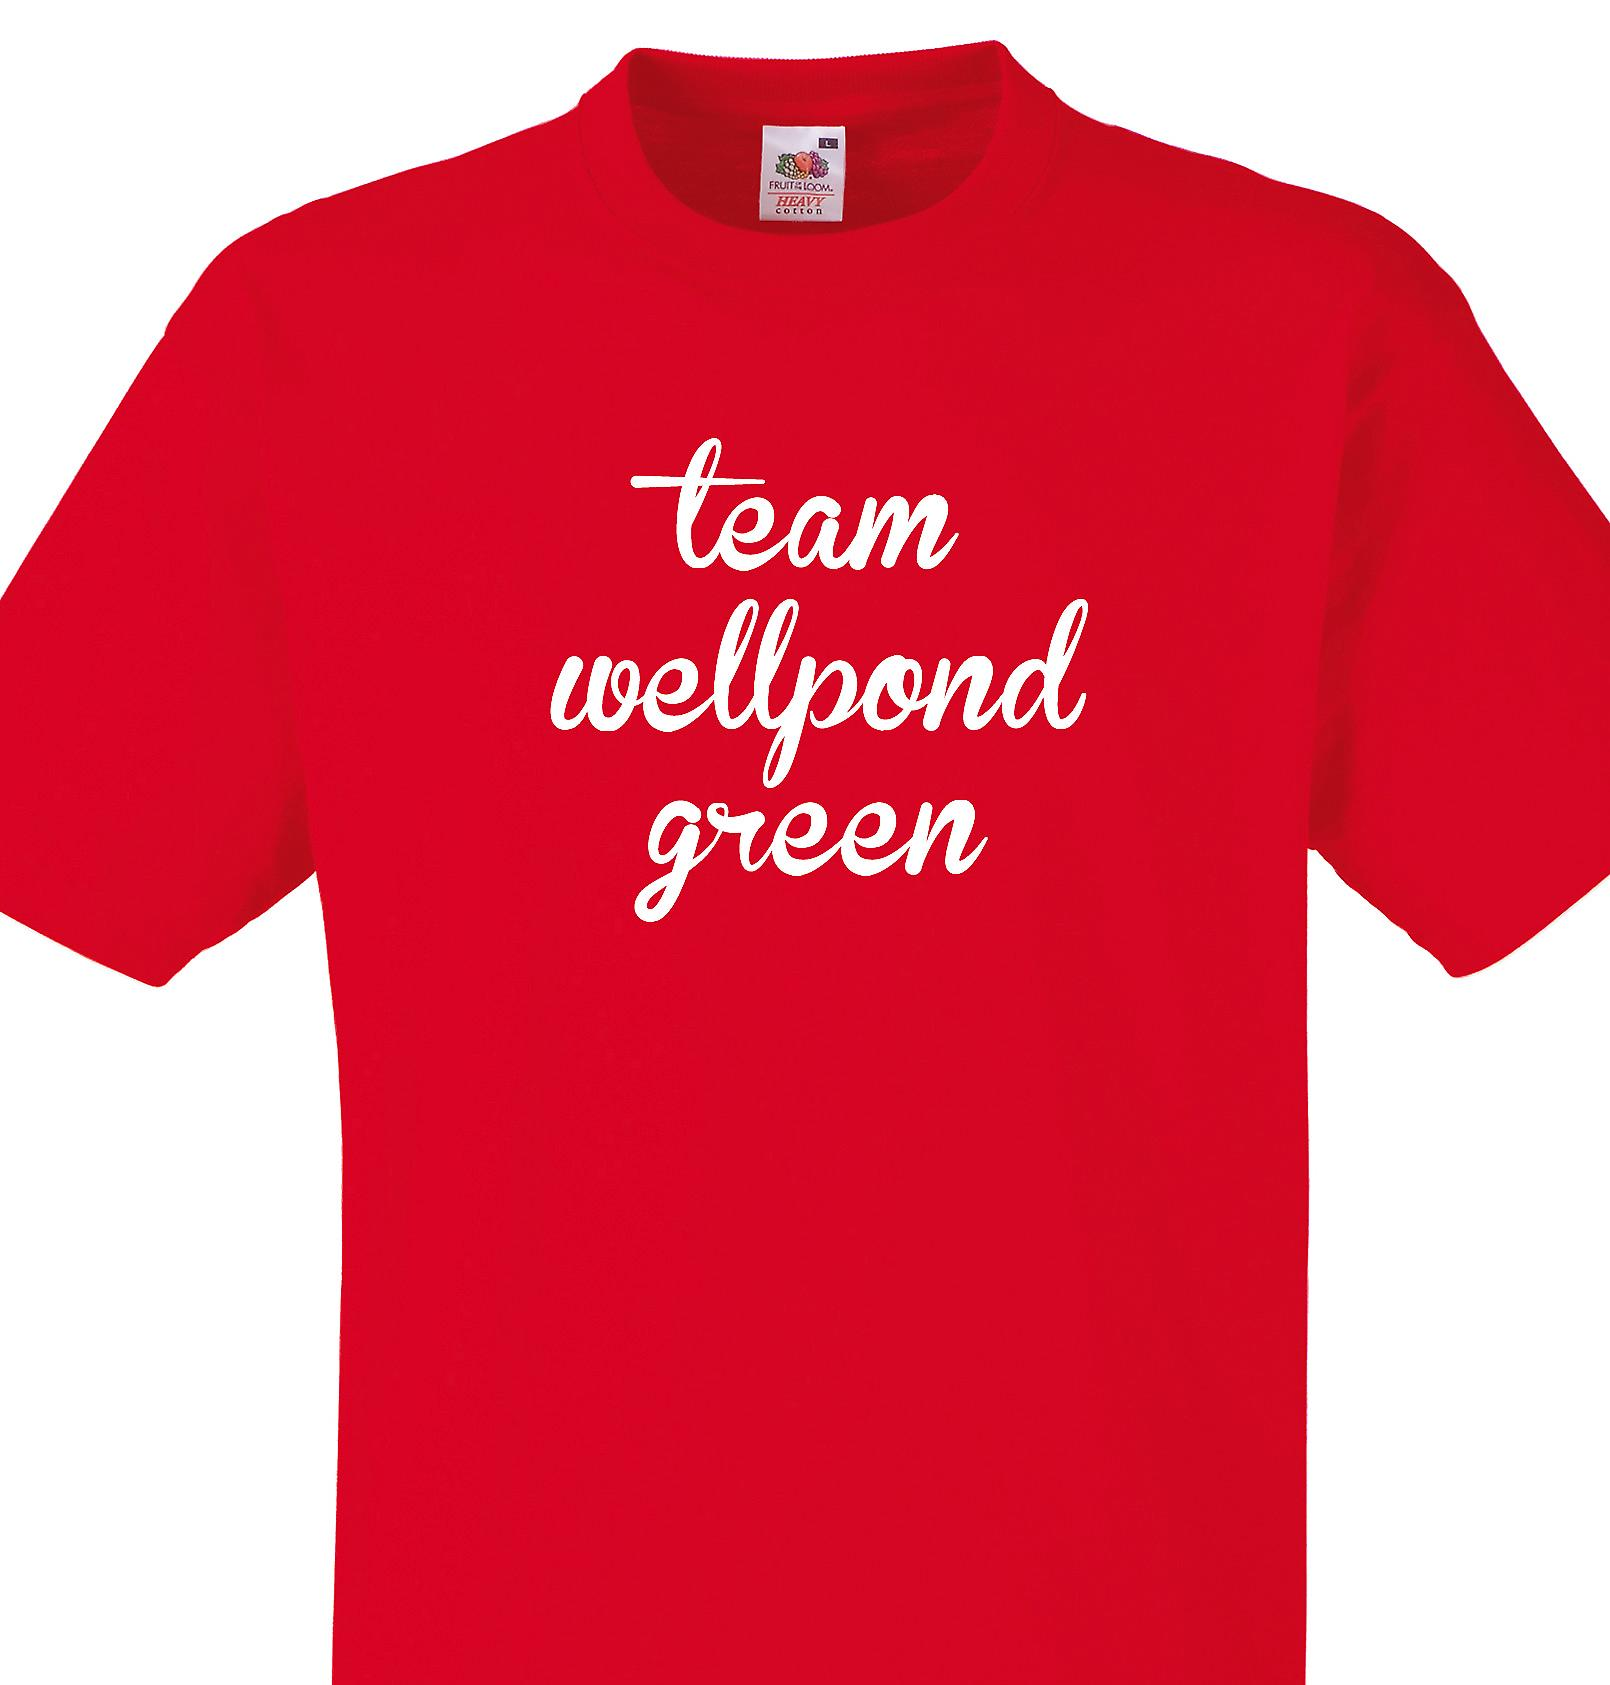 Team Wellpond green Red T shirt